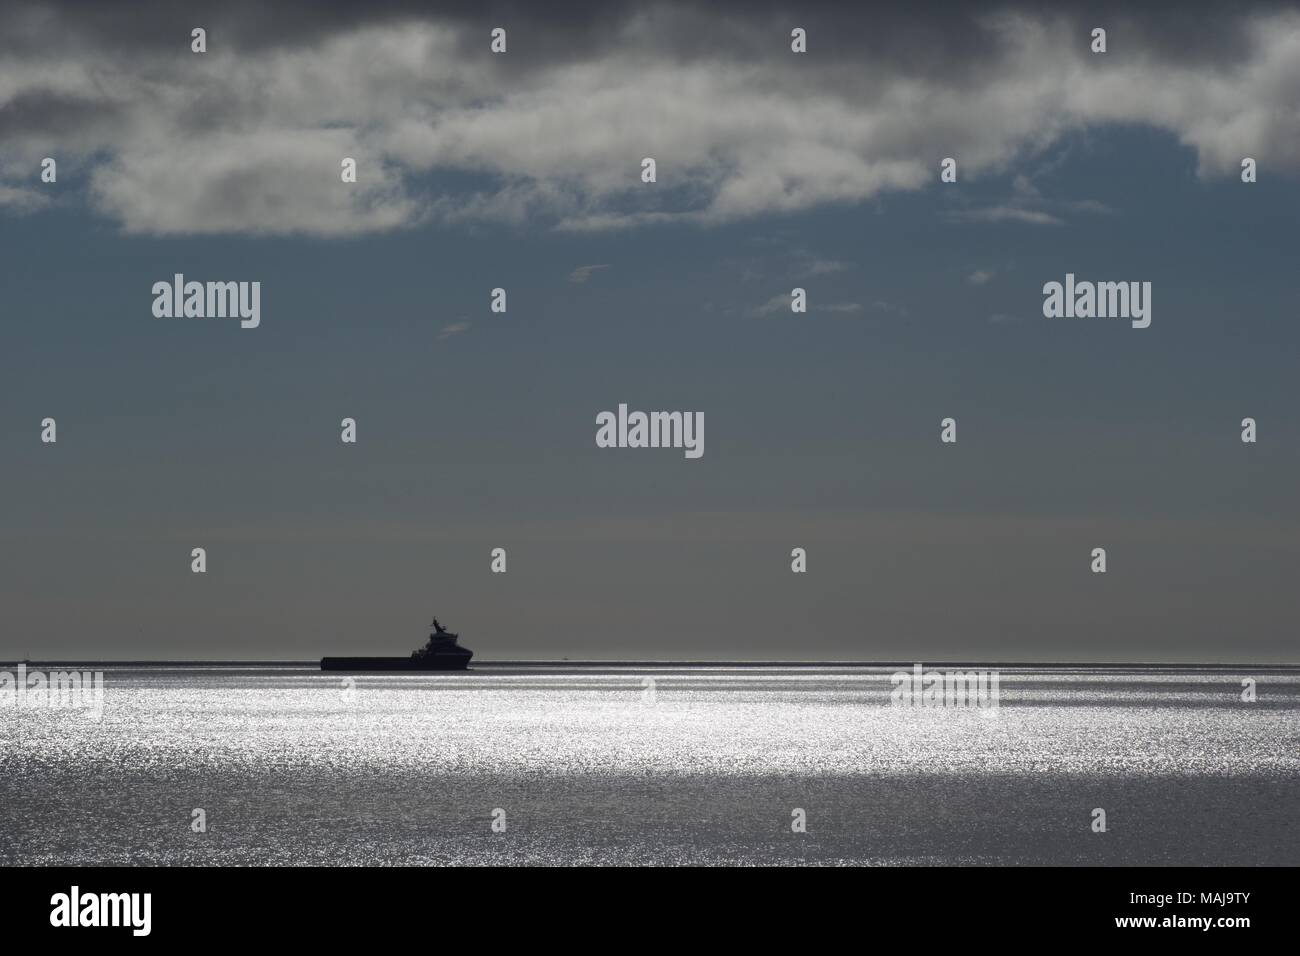 Offshore Support Vessel, Silhouetted on a Sparkling Tranquil North Sea. Aberdeen, Scotland, UK. - Stock Image